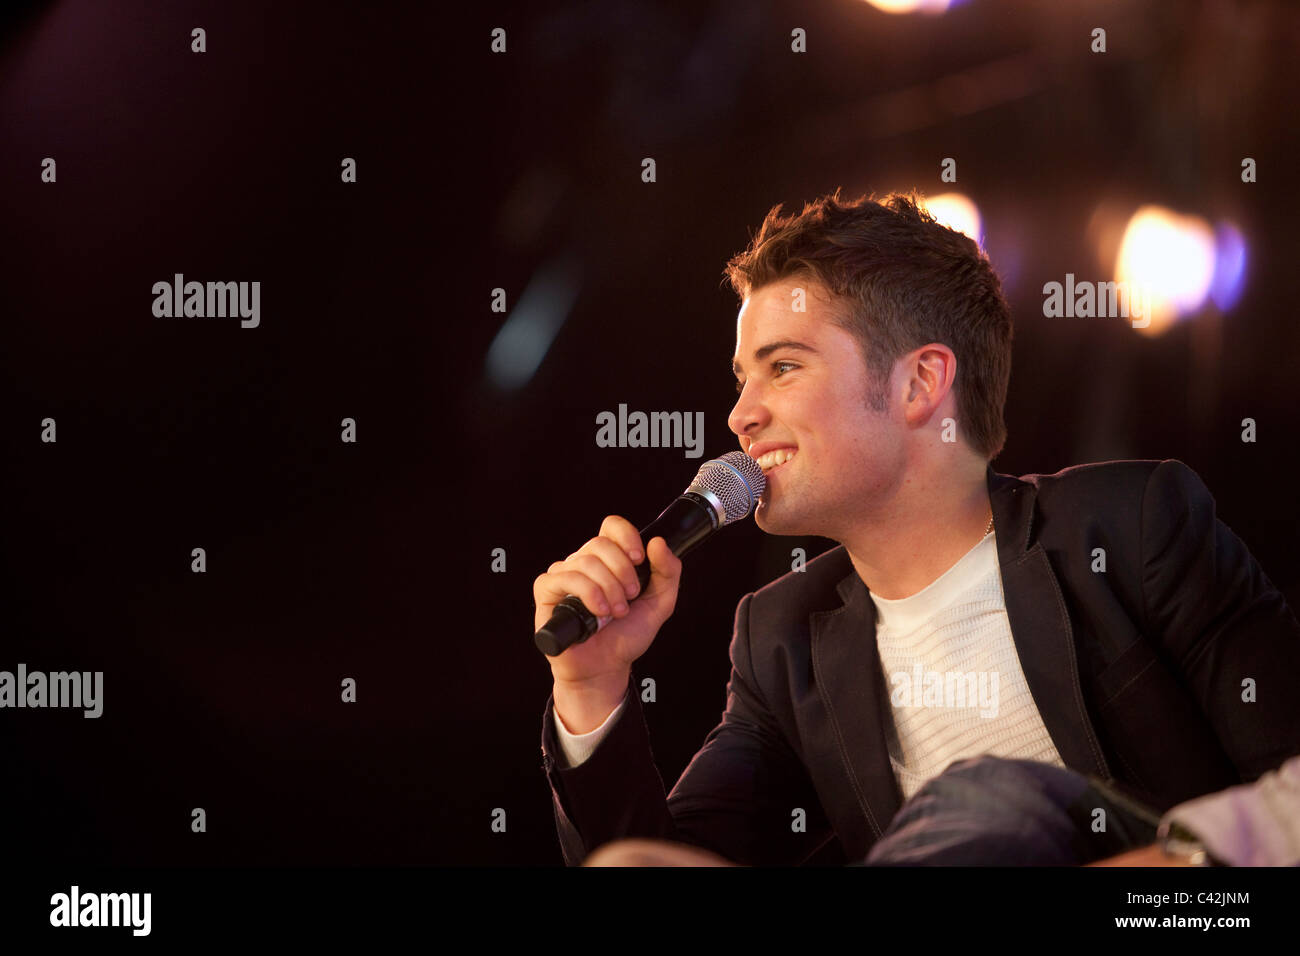 2009 X Factor winner Joe McElderry is interviewed on stage at Glasgow's 'Glam in the City' event - Stock Image